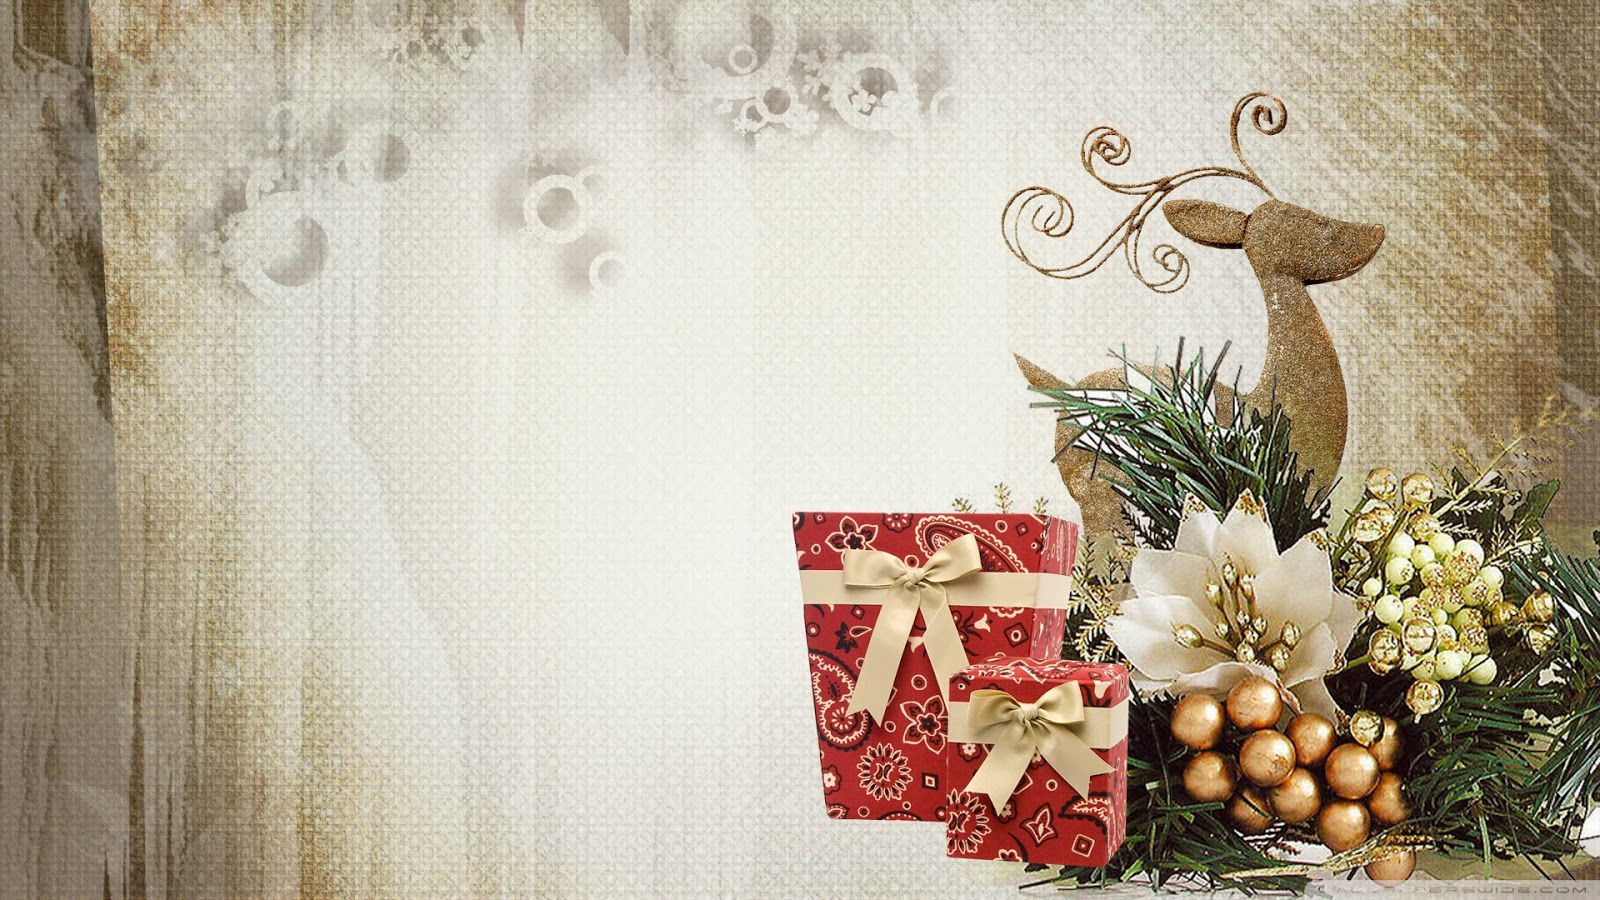 187 1871915 christmas wallpaper hd christmas decorations christmas elegant christmas